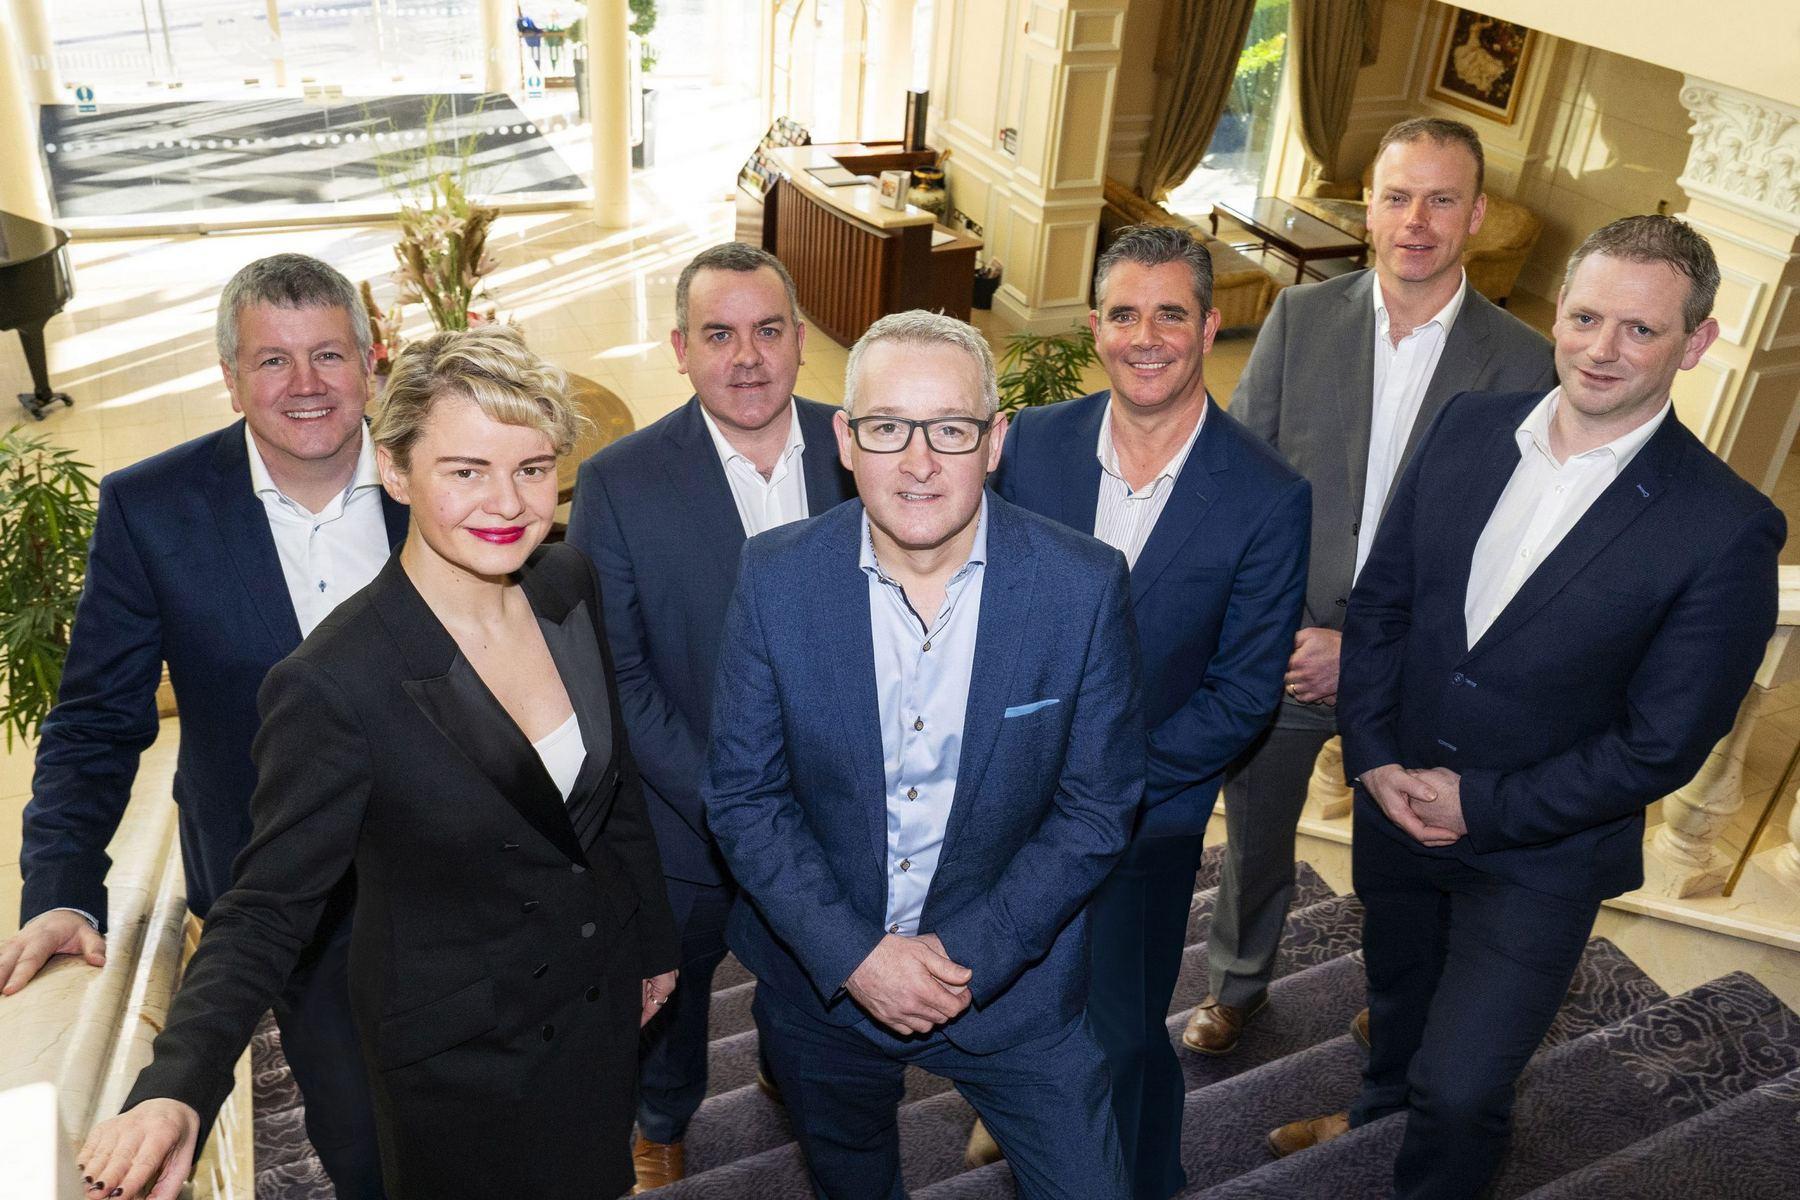 (L to R): Sean Meagher, Associate Director – Commercial, Giedre Visockaite, Associate Director – Strategy and Marketing, Henry McCann, Group Operations Director, Mark Flanagan, Group Managing Director, Brian Burke, Operations Manager – Connacht, Ruairi Ryan, Associate Director – Operations and Mikey Ryan, Associate Director – Business Unit Leader – Operations Connacht